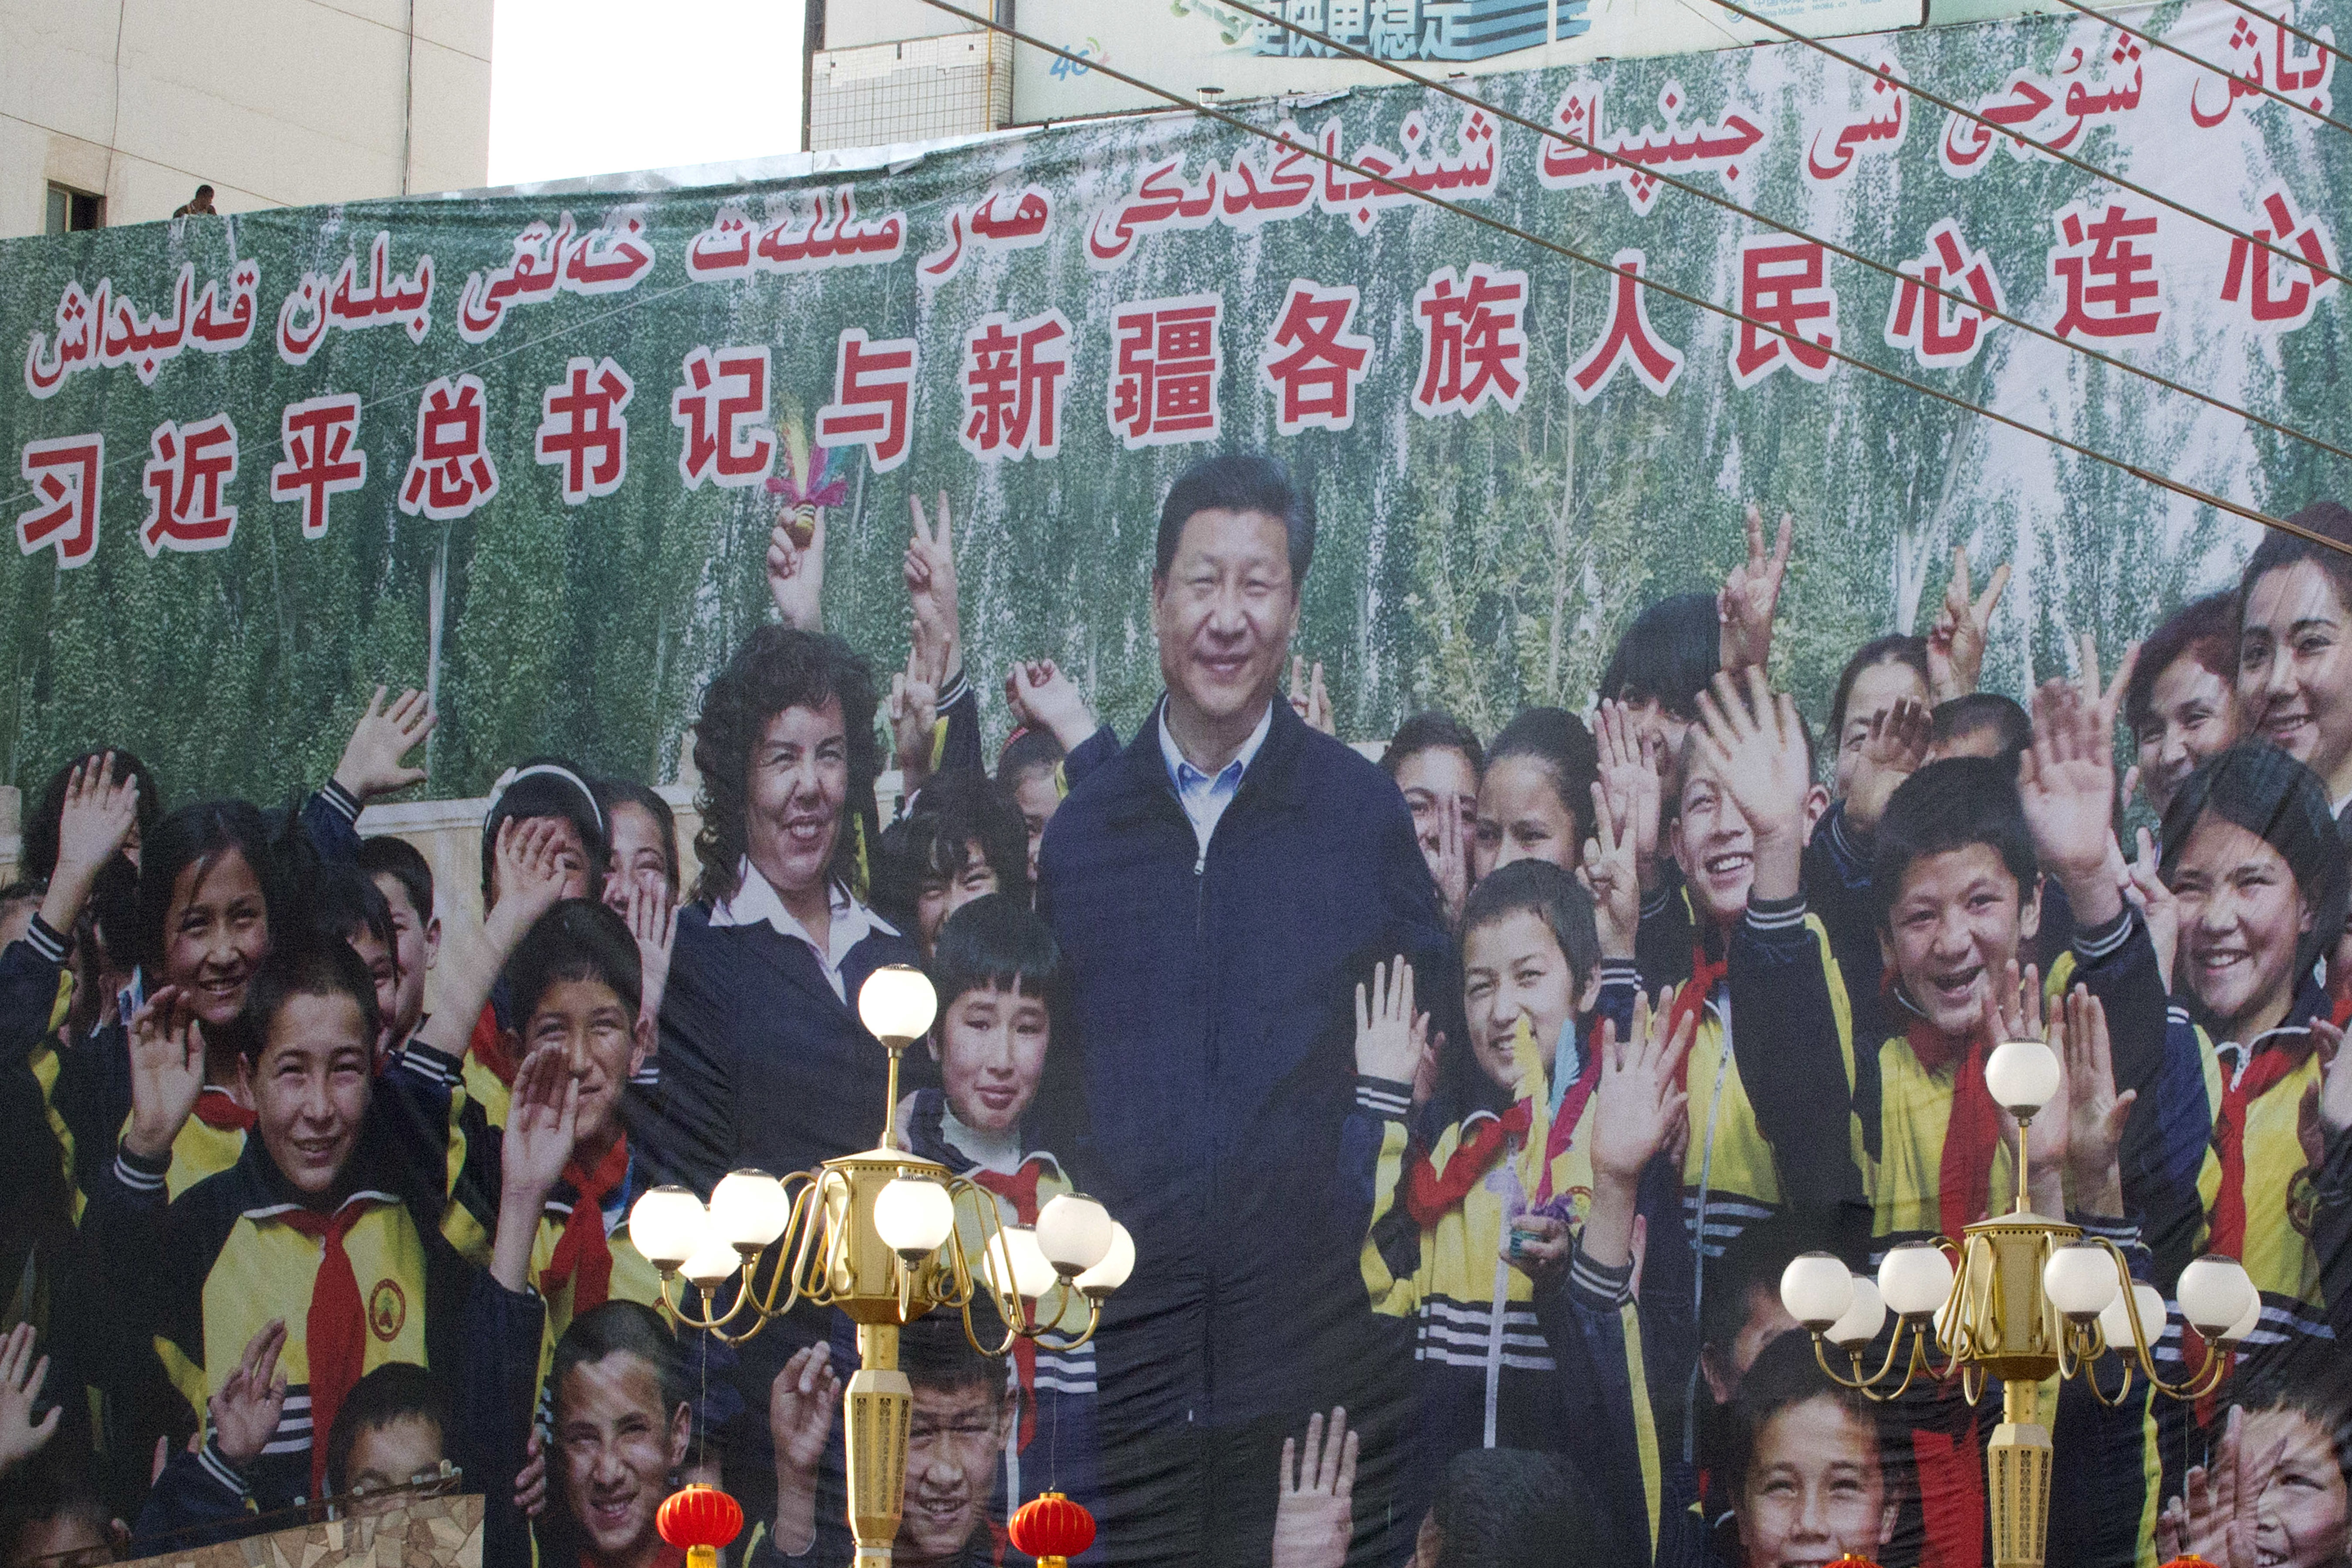 """FILE - A propaganda poster showing Chinese President Xi Jinping with ethnic minority children and the slogan which reads """"Party Secretary Xi Jinping and Xinjiang's multi ethnic residents united heart to heart"""" decorates the side of a building in Kash"""